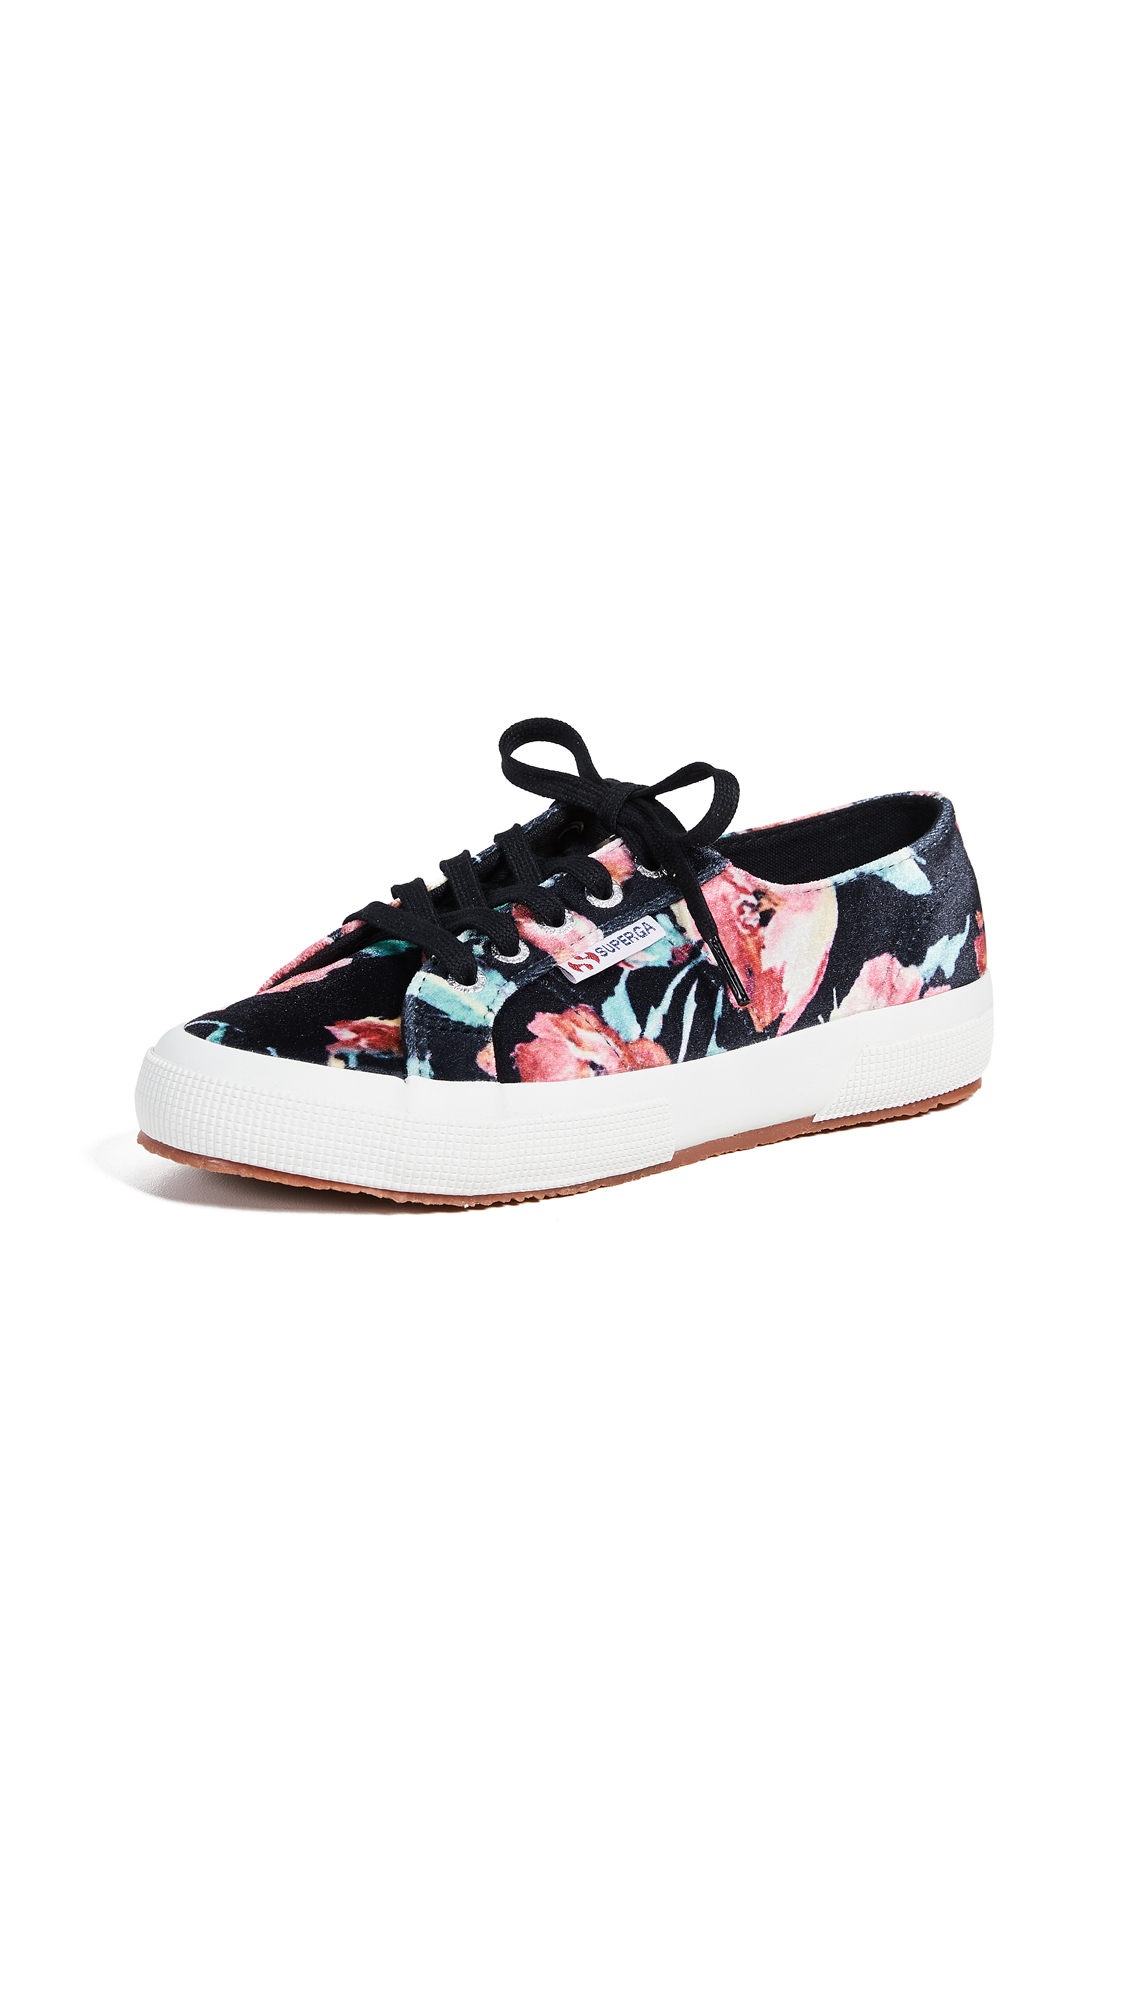 Superga 2750 Floral Printed Sneakers - Black Floral